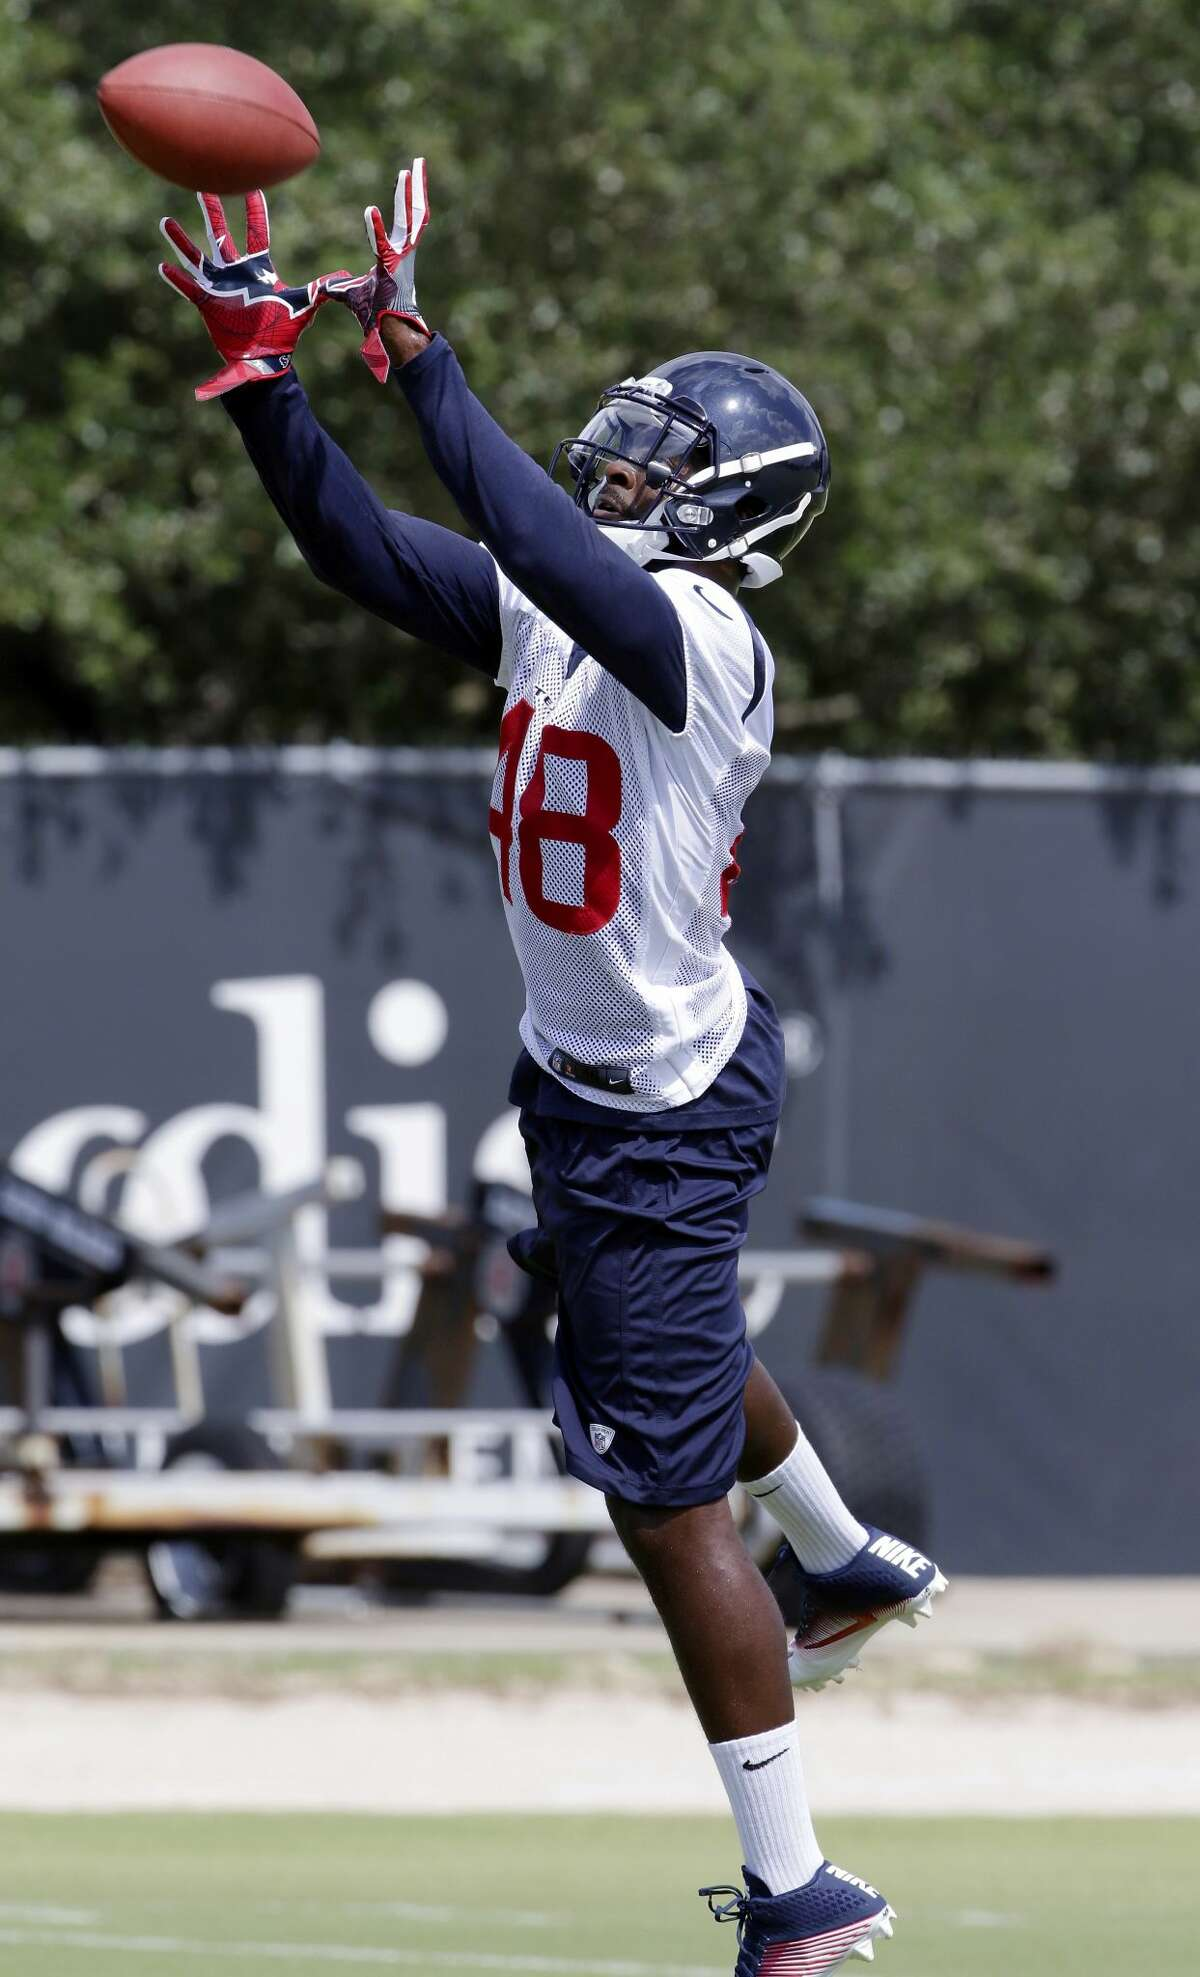 Houston Texans safety Jaiquawn Jarrett (48) catches passes during his tryout at NFL football practice Wednesday June 14, 2017, in Houston. (AP Photo/Michael Wyke)